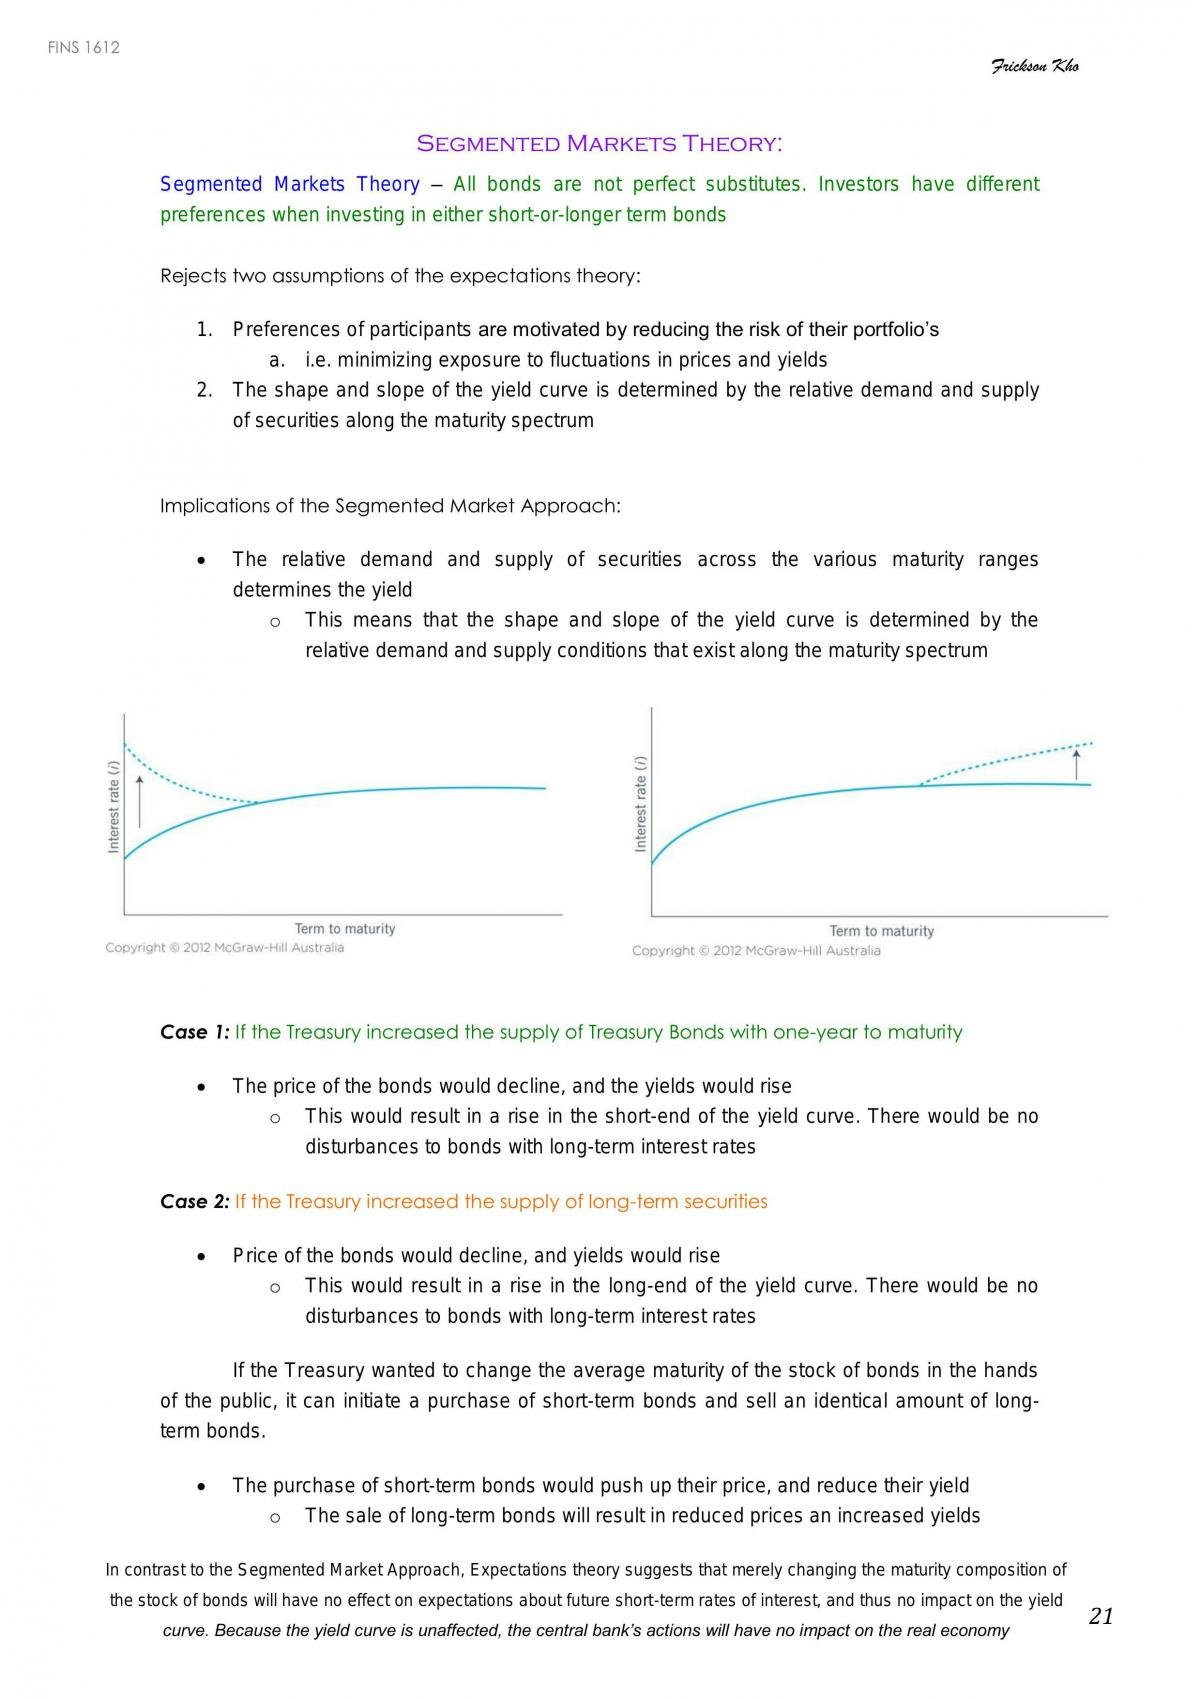 FINS1612 Notes - Page 21